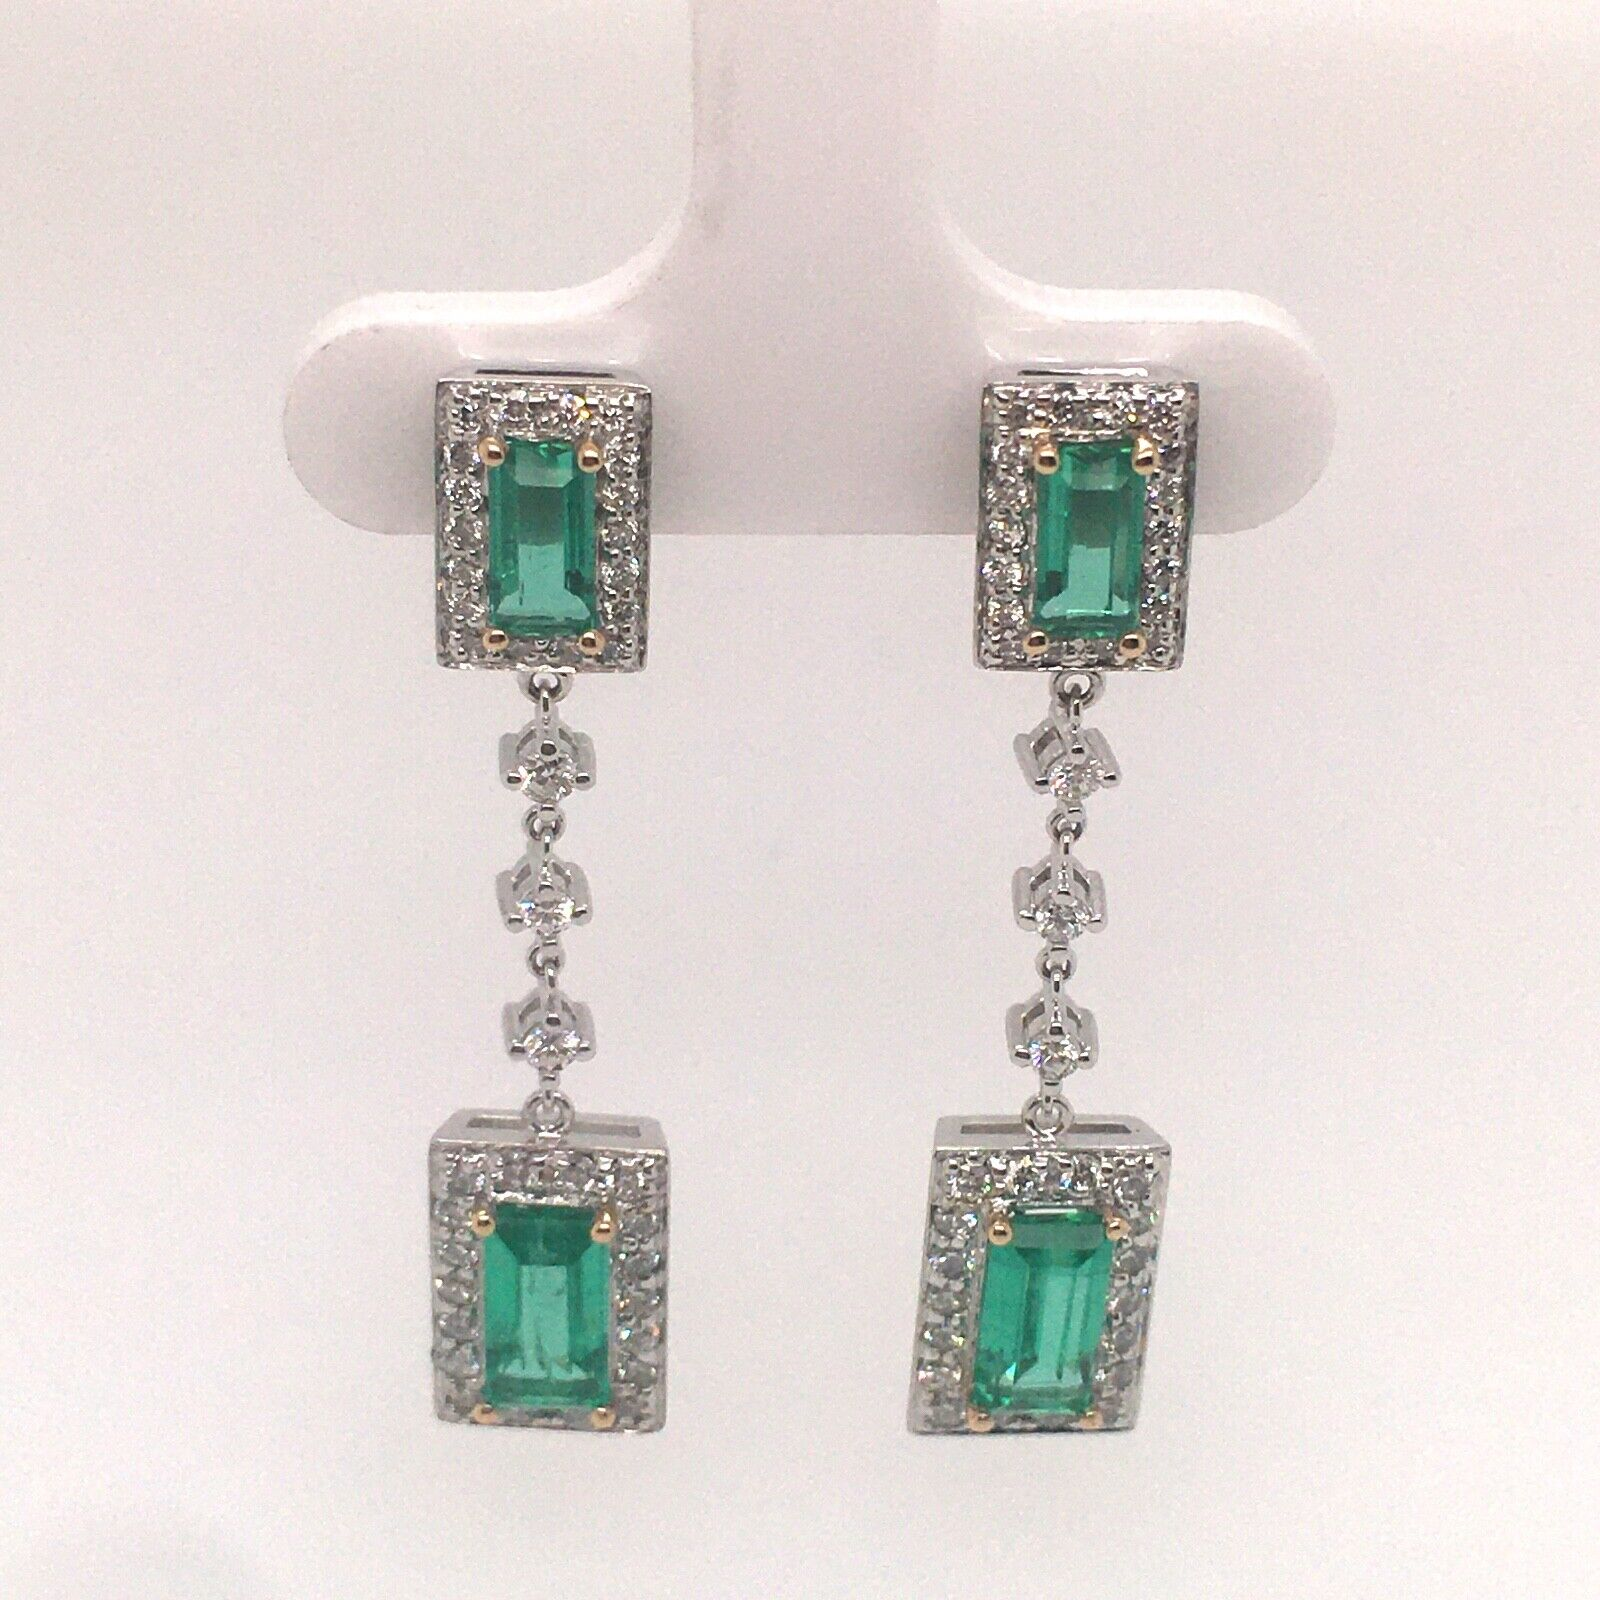 Majestic GIA Certified Colombia Emerald Earrings White Gold and Diamonds